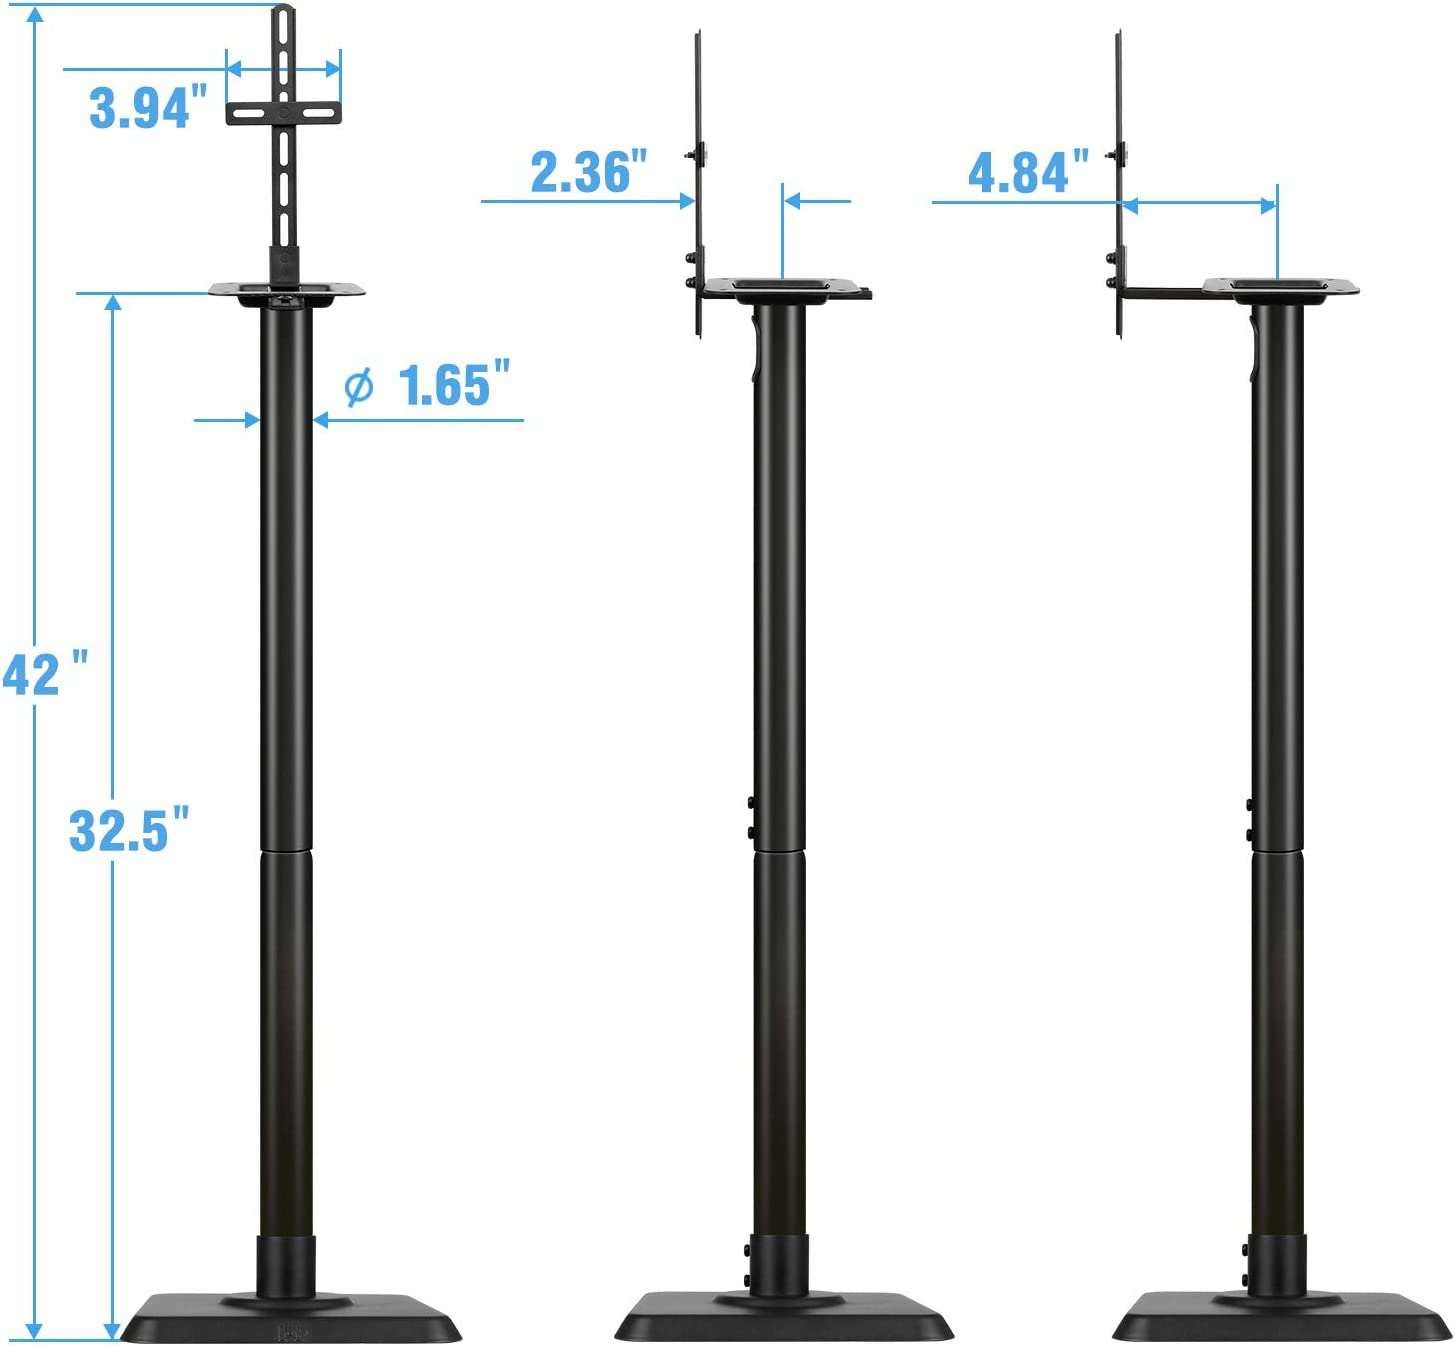 Mounting Dream Speaker Stands - Bookshelf Speaker Stands for Bose, Polk, JBL, KEF, Sonos, Sony and Others, Set of 2 Satellite Speaker Stands with Wire Management (11LBS Capacity Per Stand)